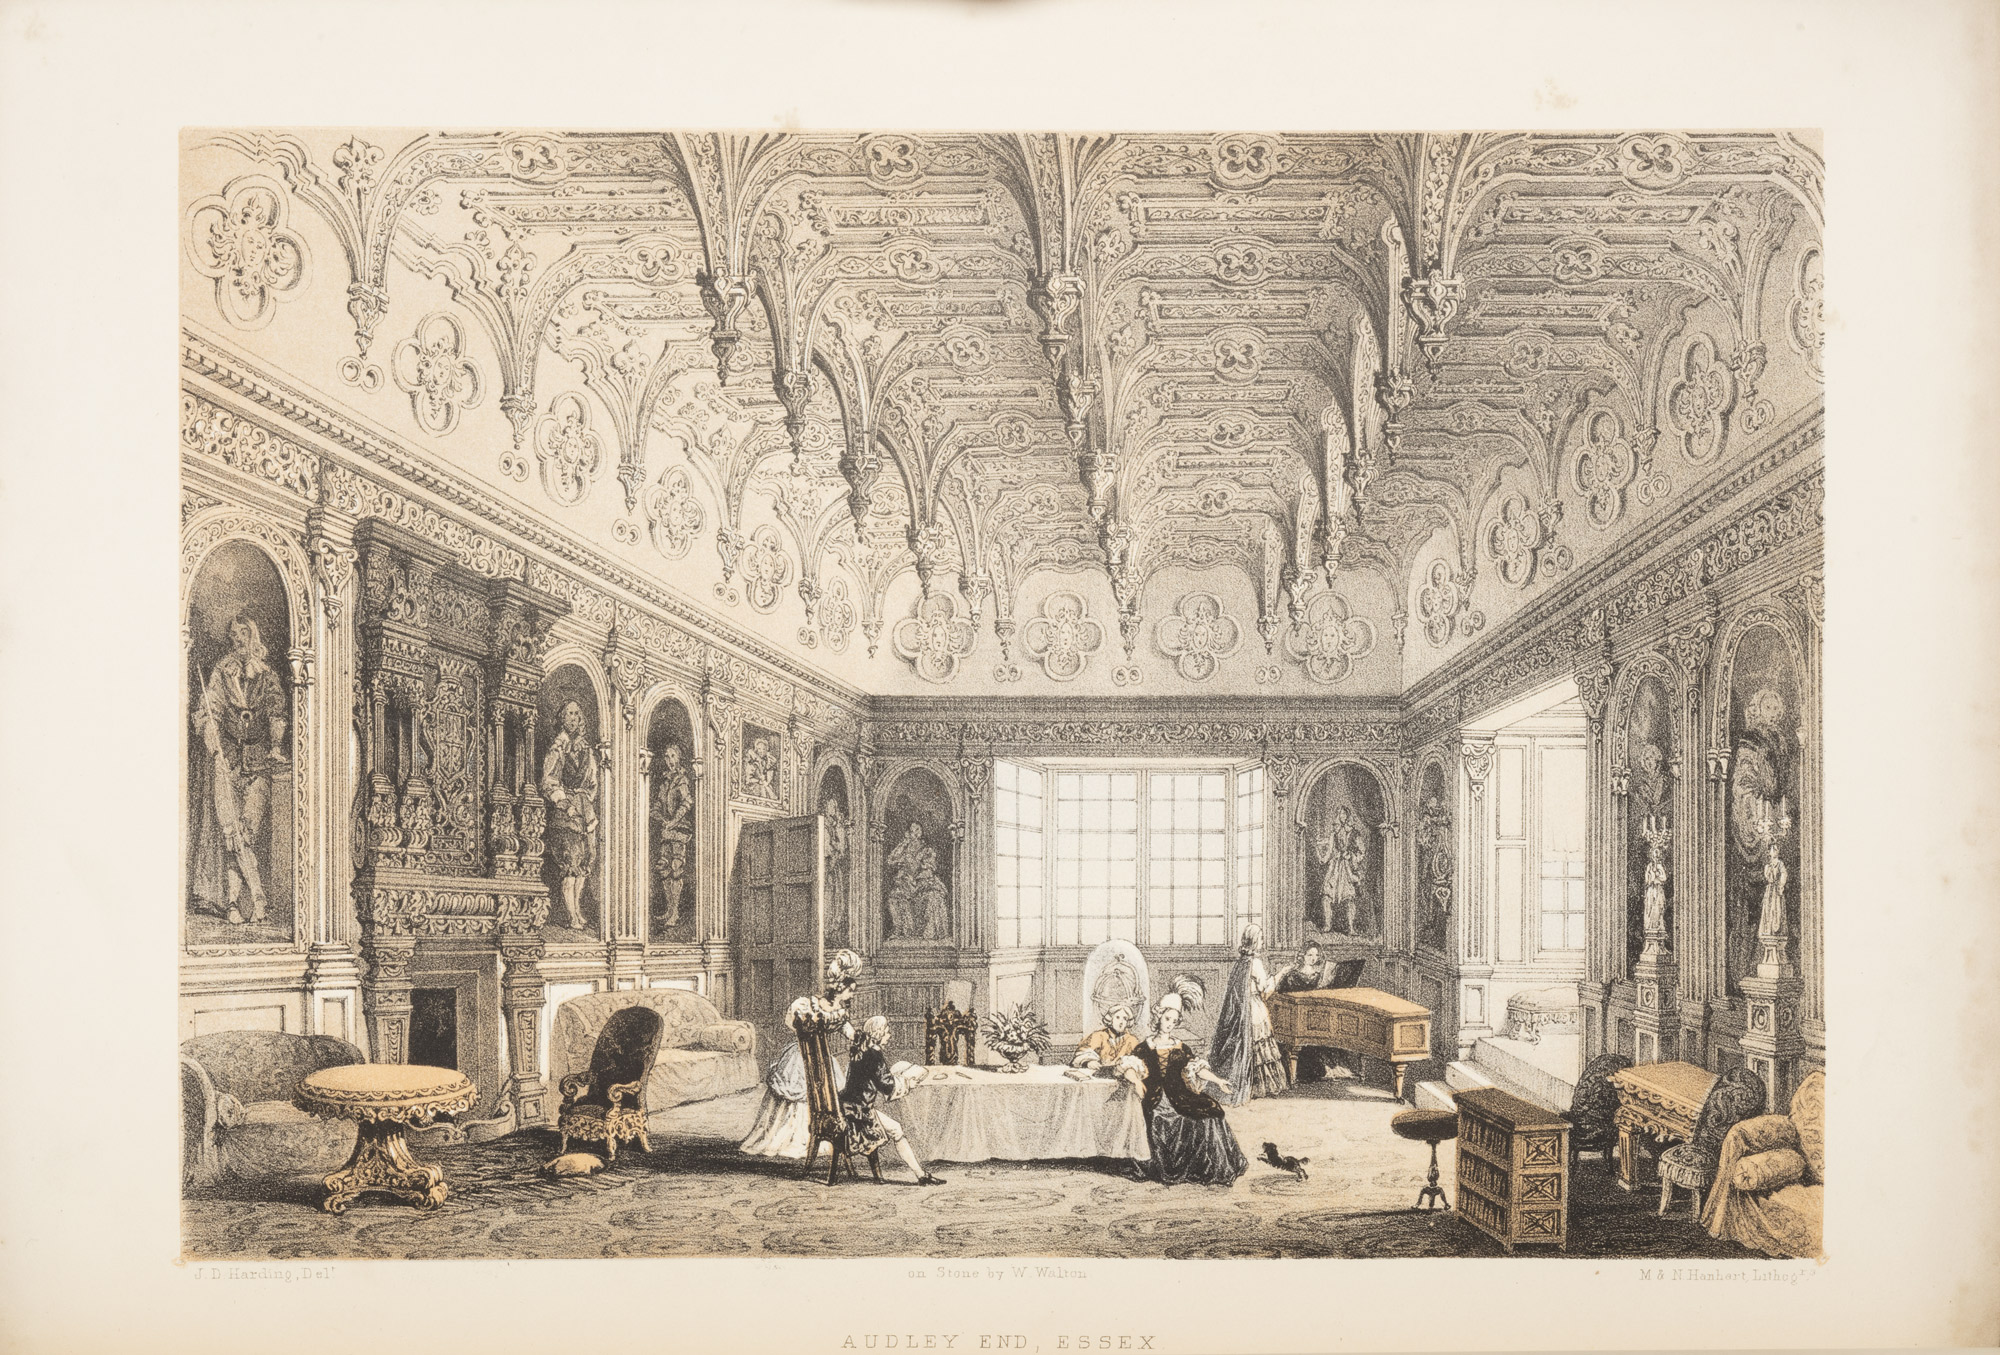 The Baronial Halls and ancient picturesque edifices of England